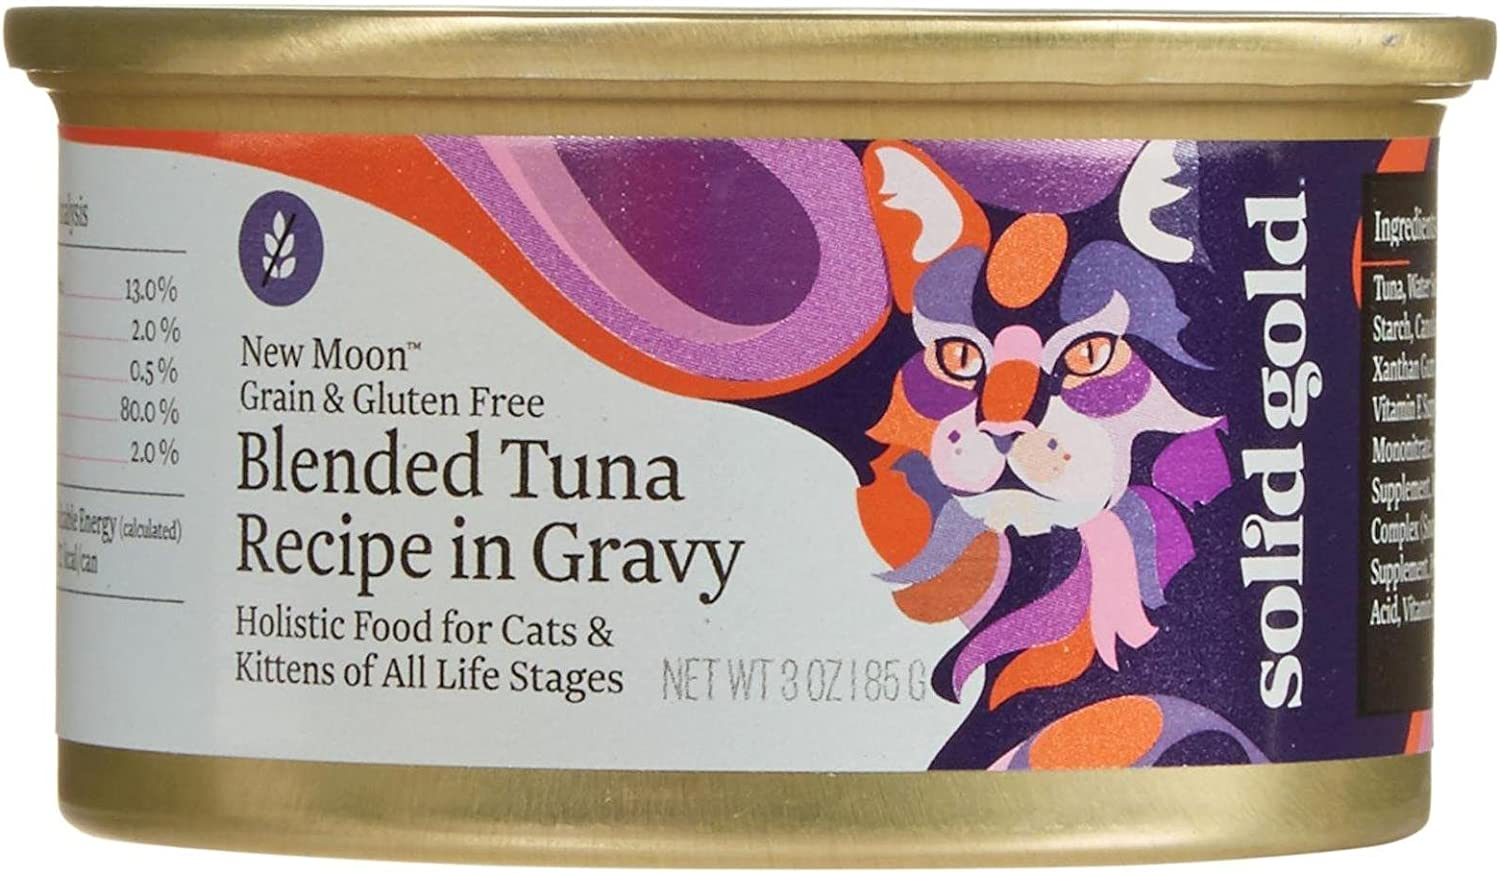 Solid Gold New Moon Holistic Wet Tuna I Blended Discount is also underway Food Cat Recipe OFFer